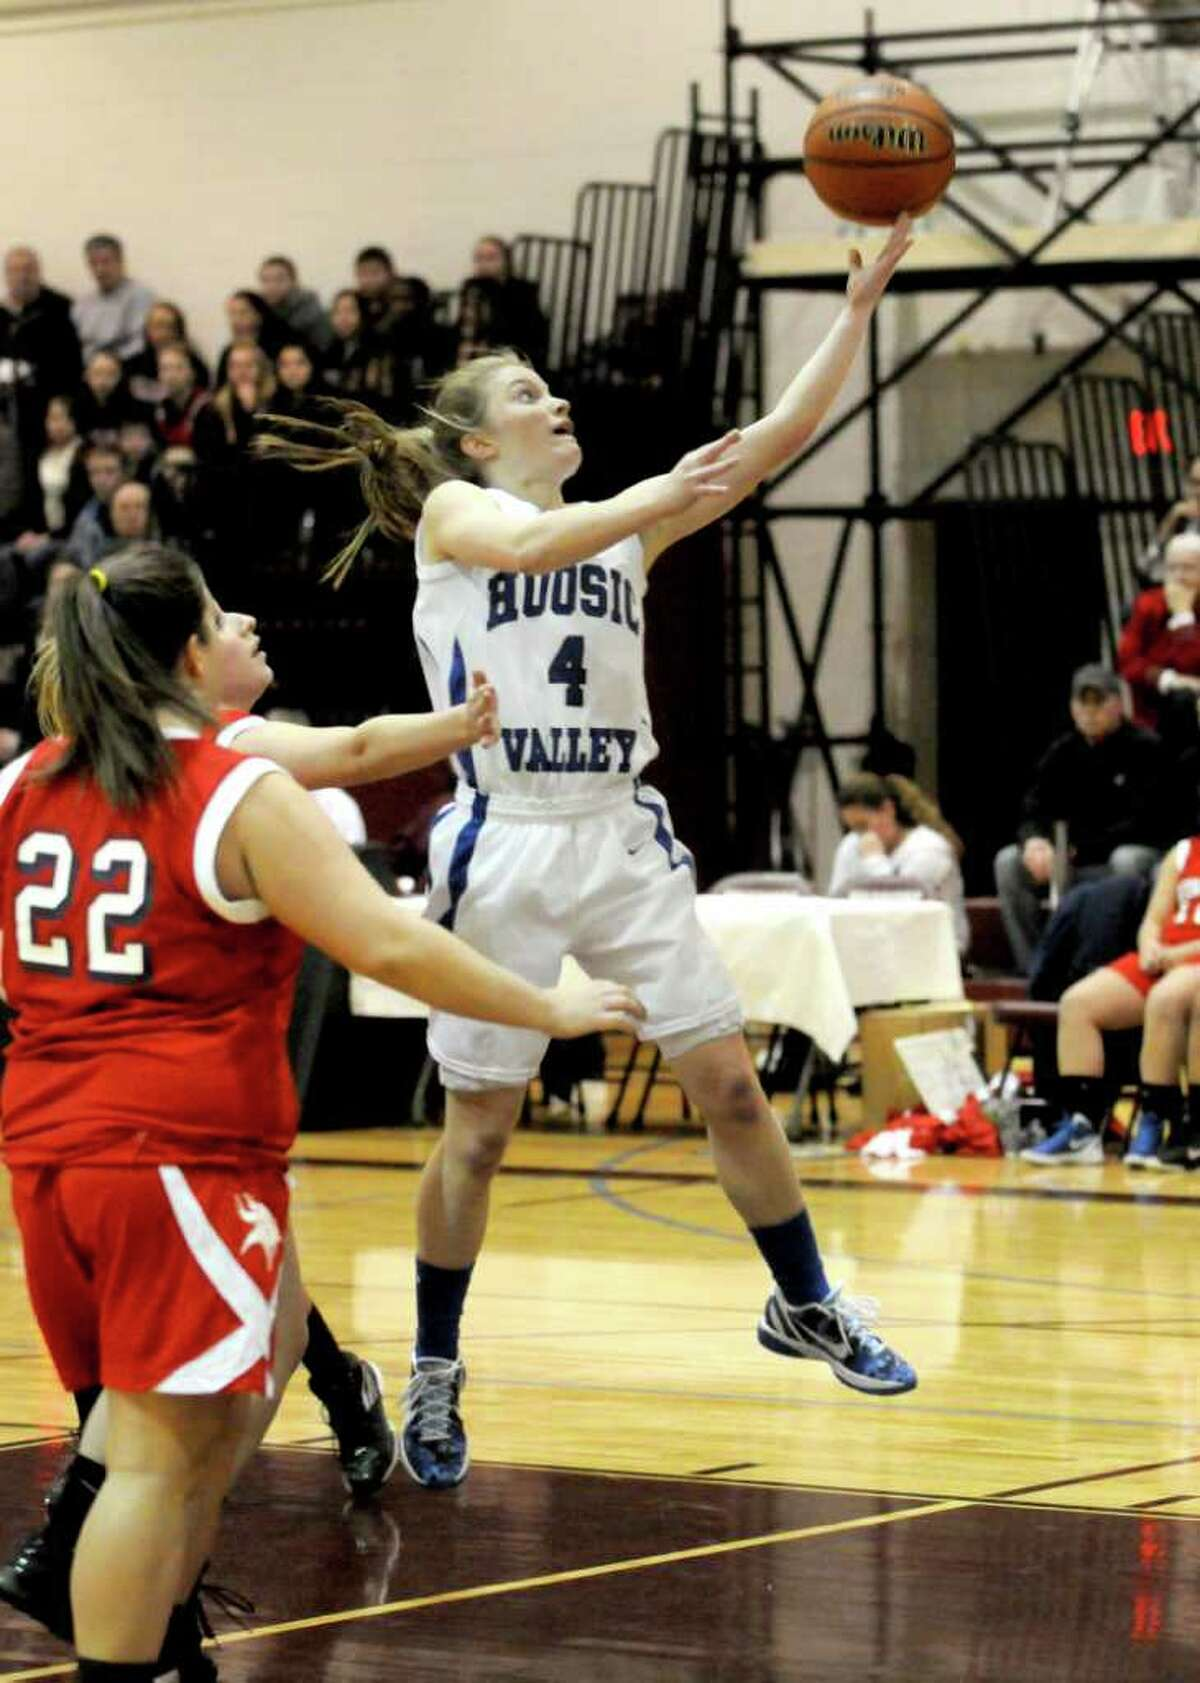 Hoosic Valley's Cassidy Chapko goes in for a basket during their girl's high school Class C state regional against Moriah in Stillwater,N.Y. March 6,2011 ( Michael P. Farrell/Times Union )